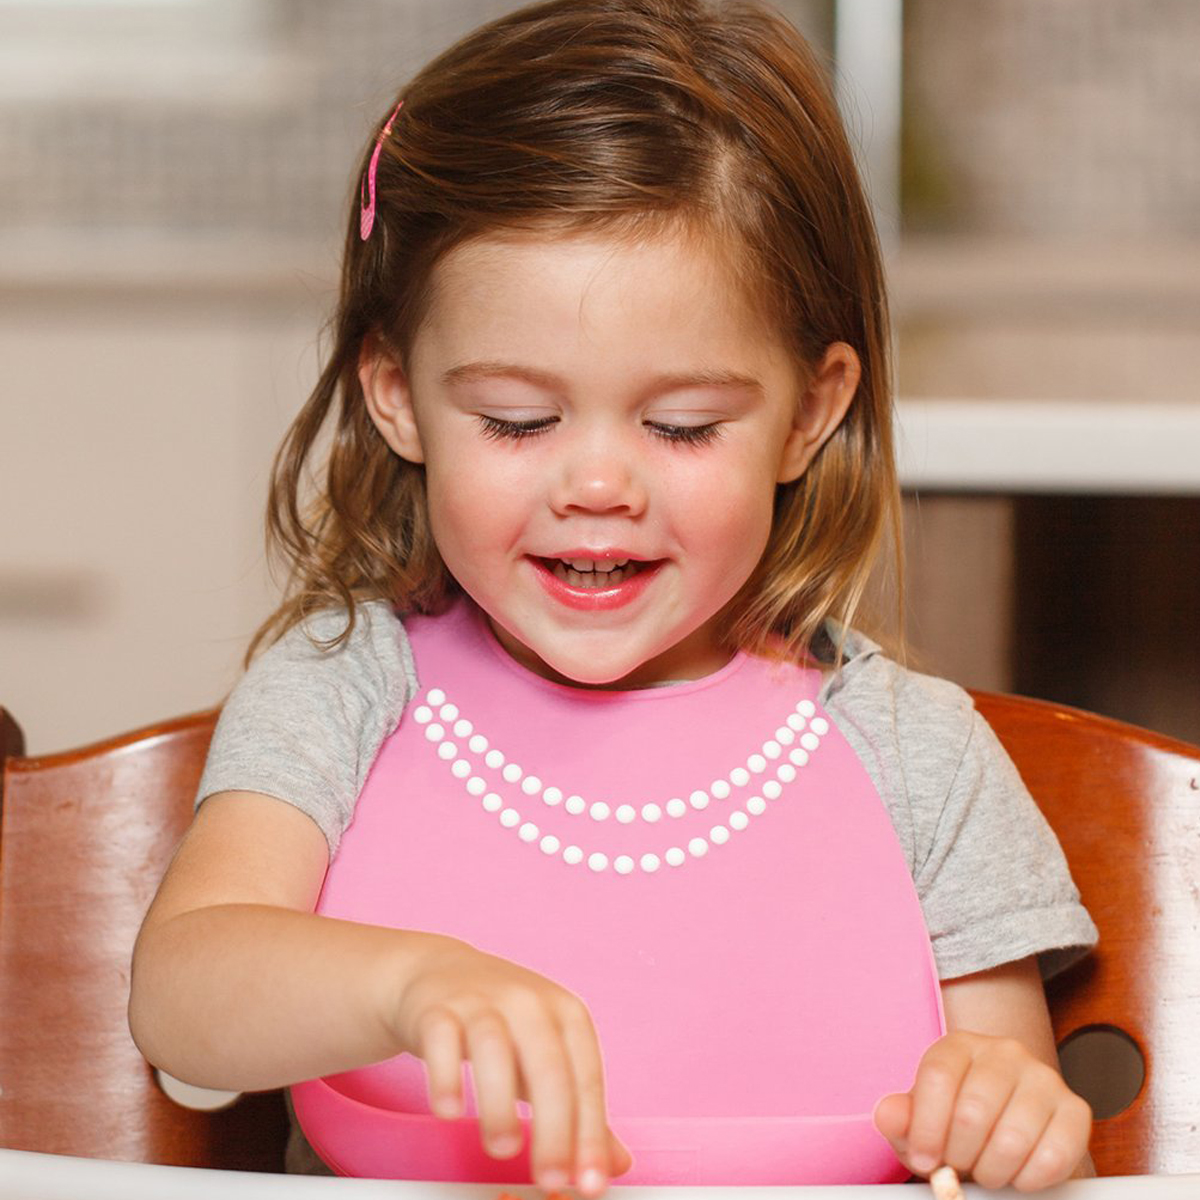 Make My Day Silicone Bucket Bib in Pink with pearls on girl